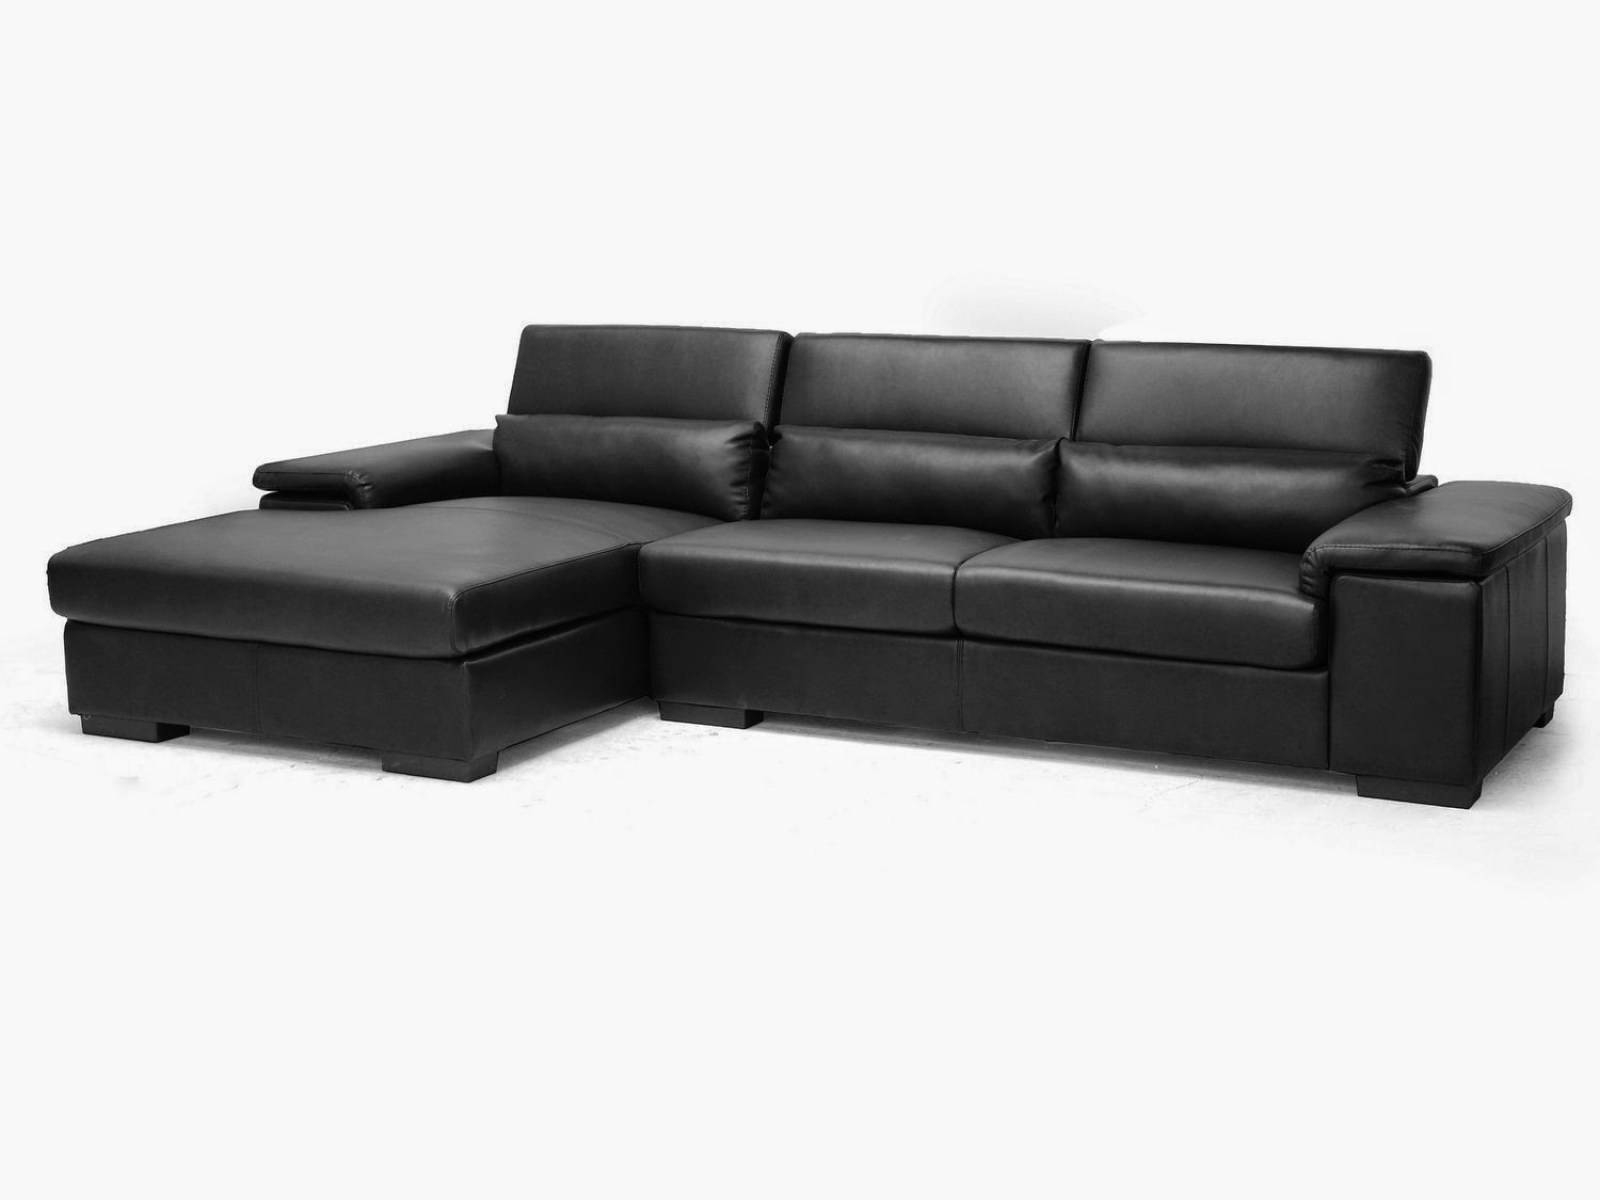 ☆▻ Sofa : 39 Sofa And Chaise Lounge Chair Modern Home Interiors Pertaining To Sofa Lounge Chairs (Gallery 28 of 30)